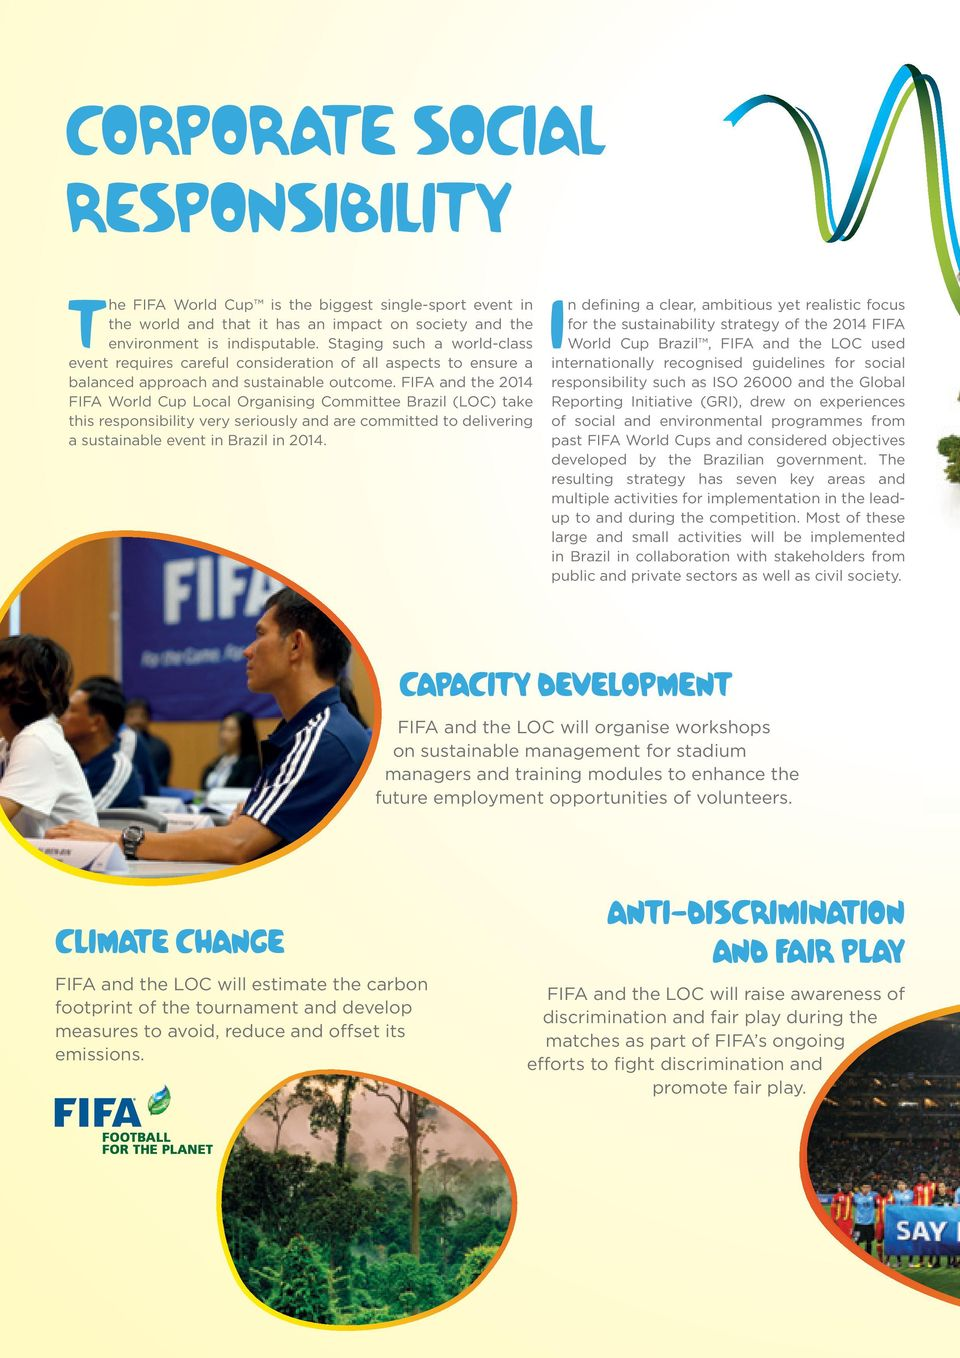 FIFA and the 2014 FIFA World Cup Local Organising Committee Brazil (LOC) take this responsibility very seriously and are committed to delivering a sustainable event in Brazil in 2014.